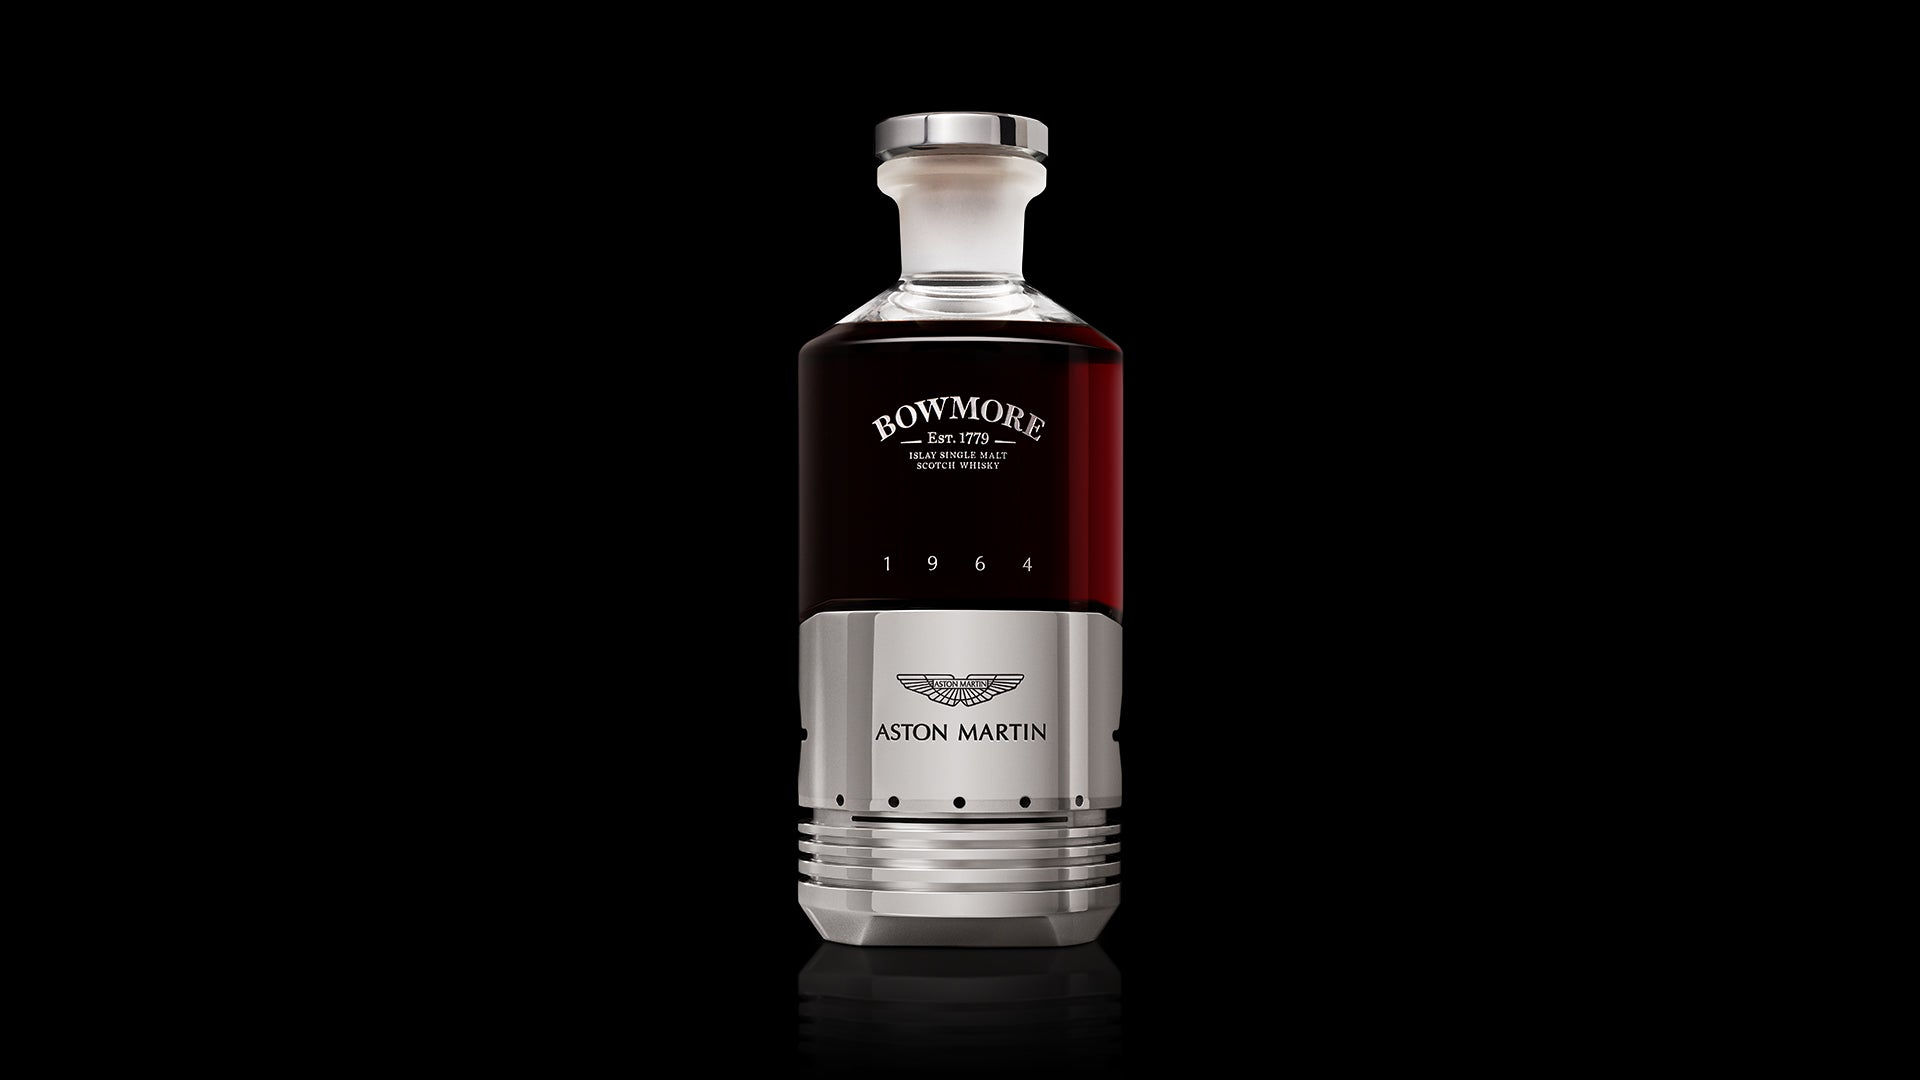 An Aston Martin £50,000 Bottle of Whiskey That James Bond Would Love